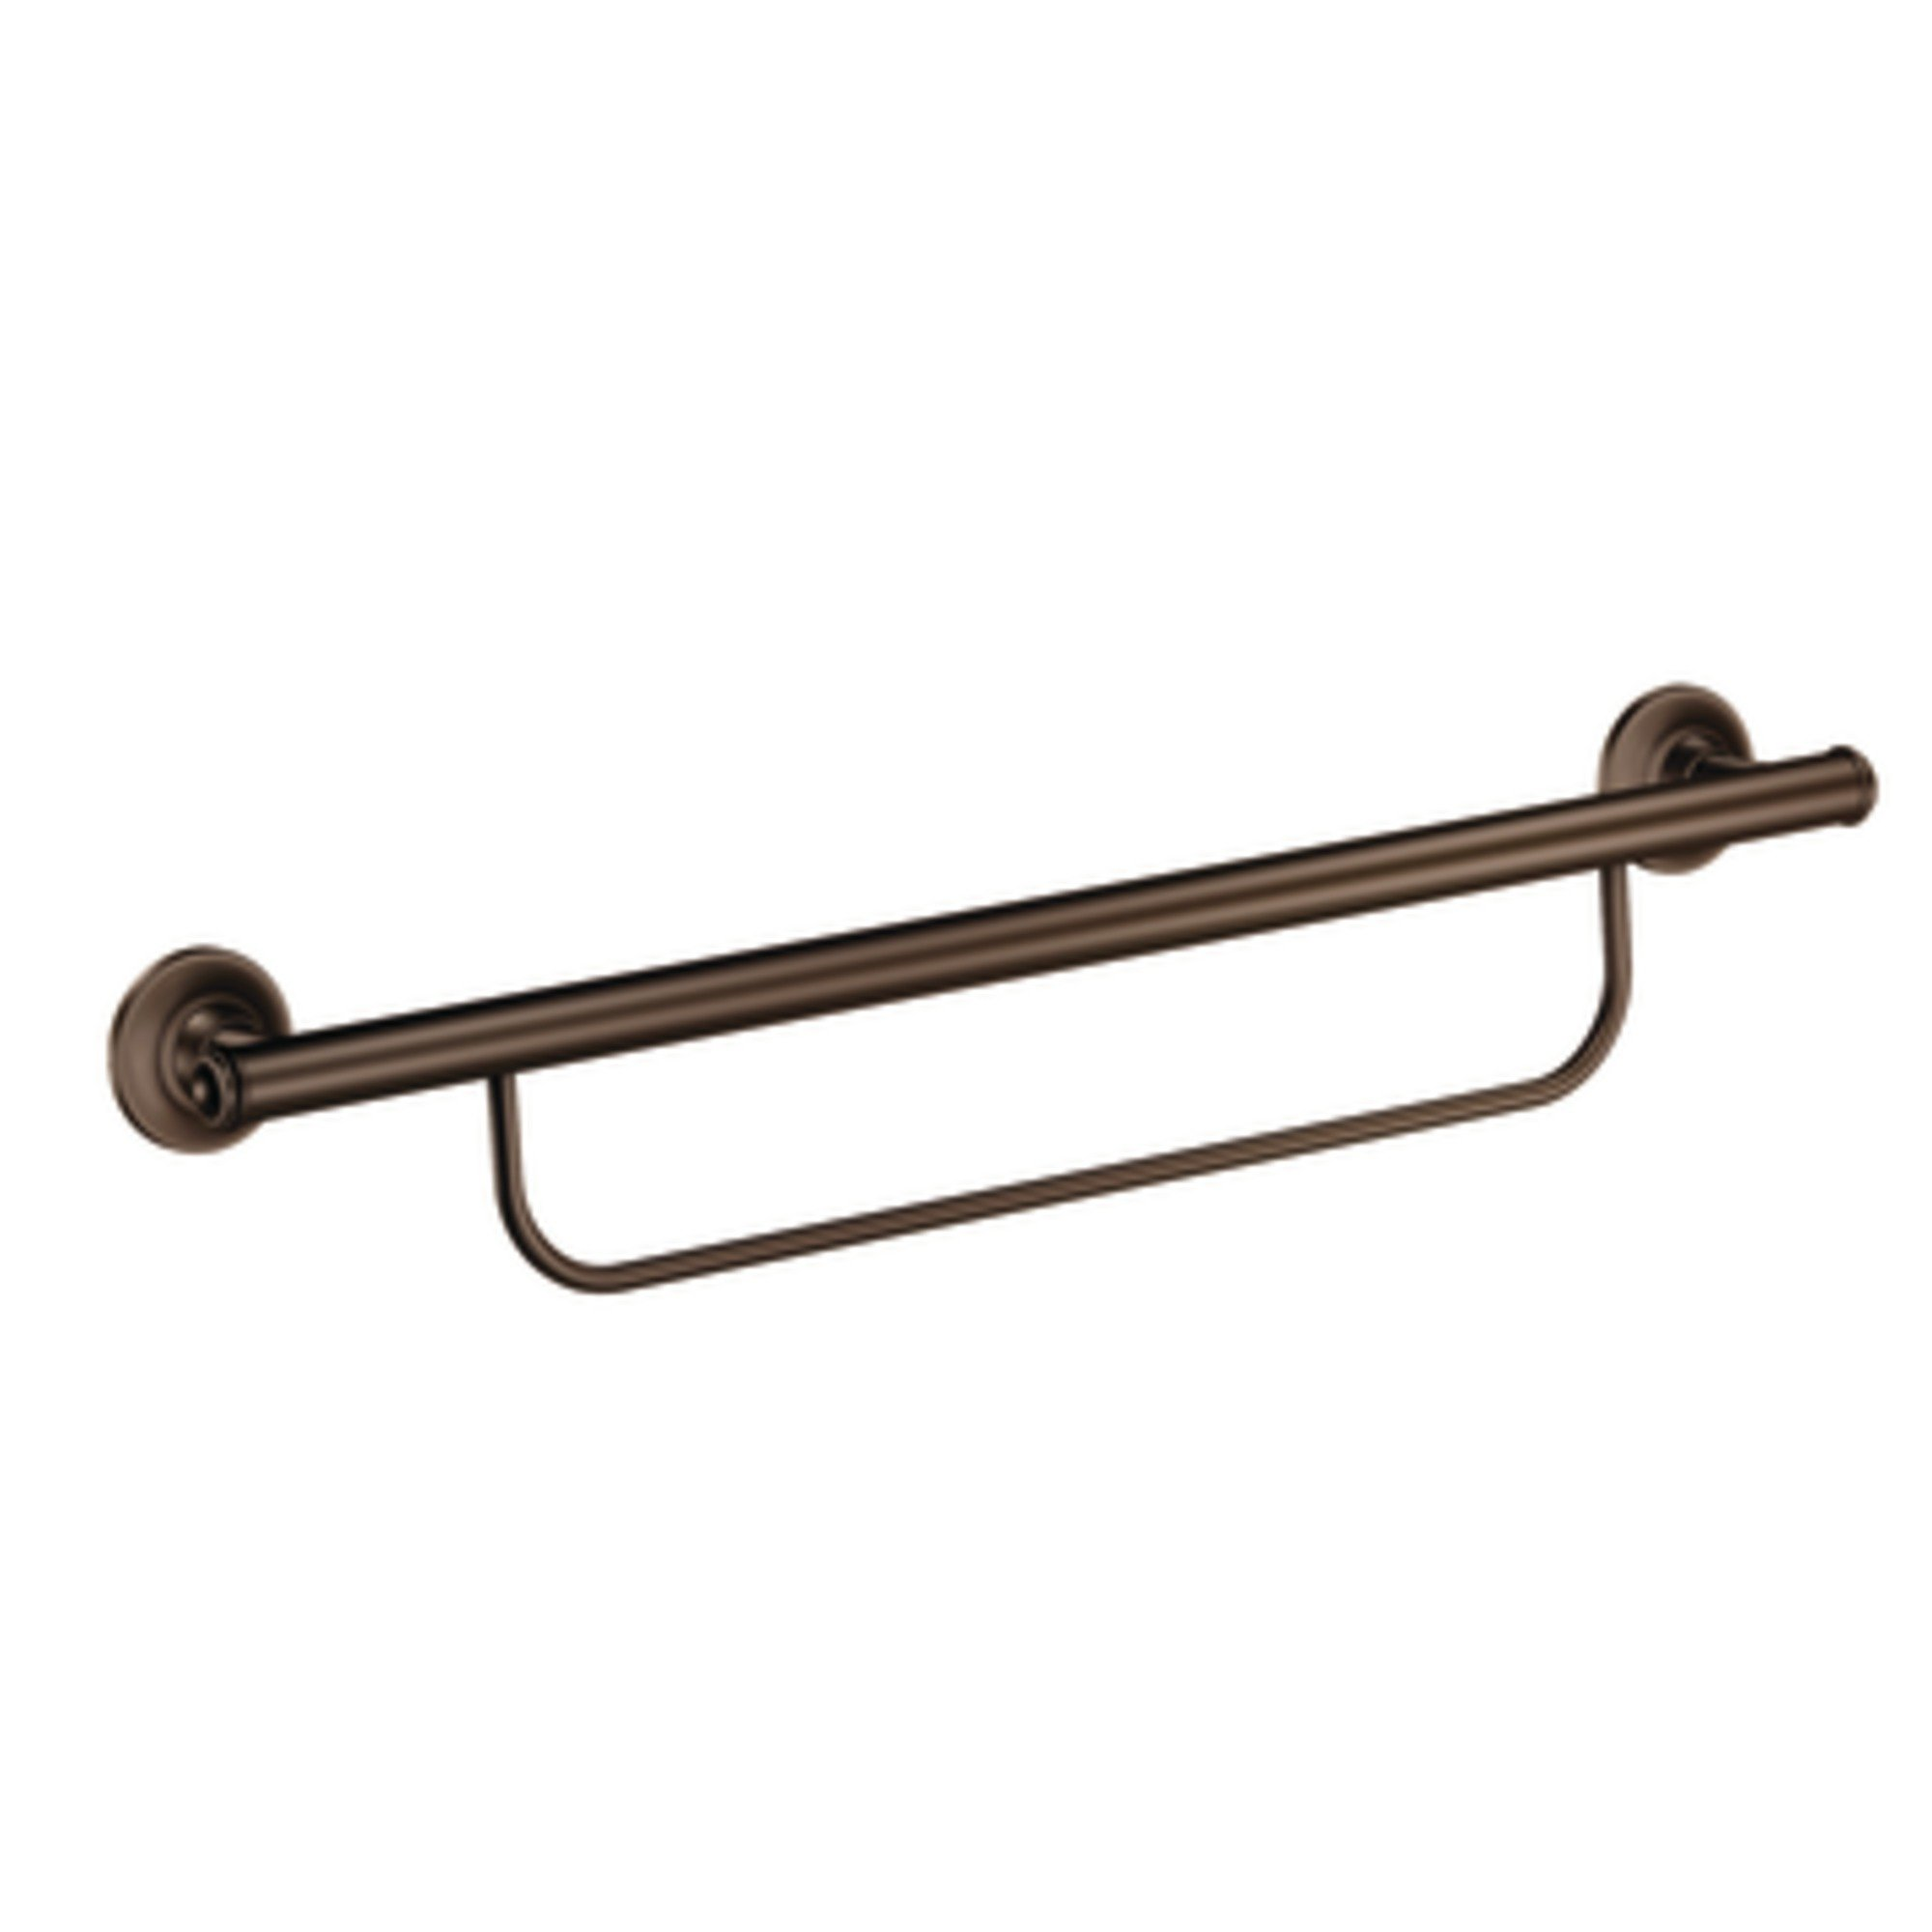 Moen LR2350DOWB Grab Bar with Integrated Towel Bar, Bronze